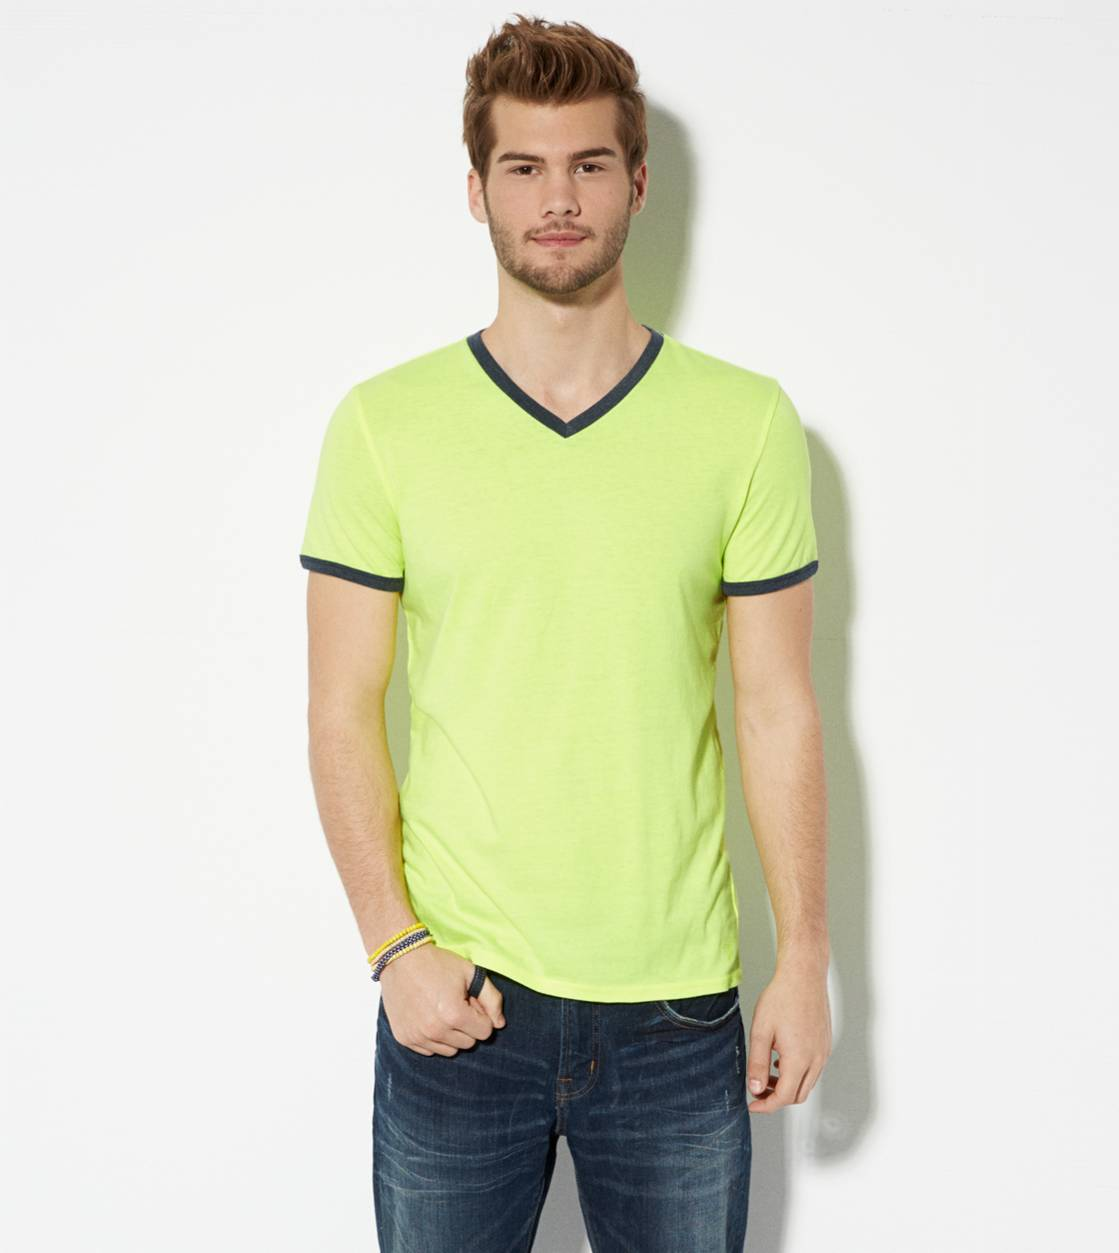 Neon Lemon AE Legend Ringer V-Neck T-Shirt